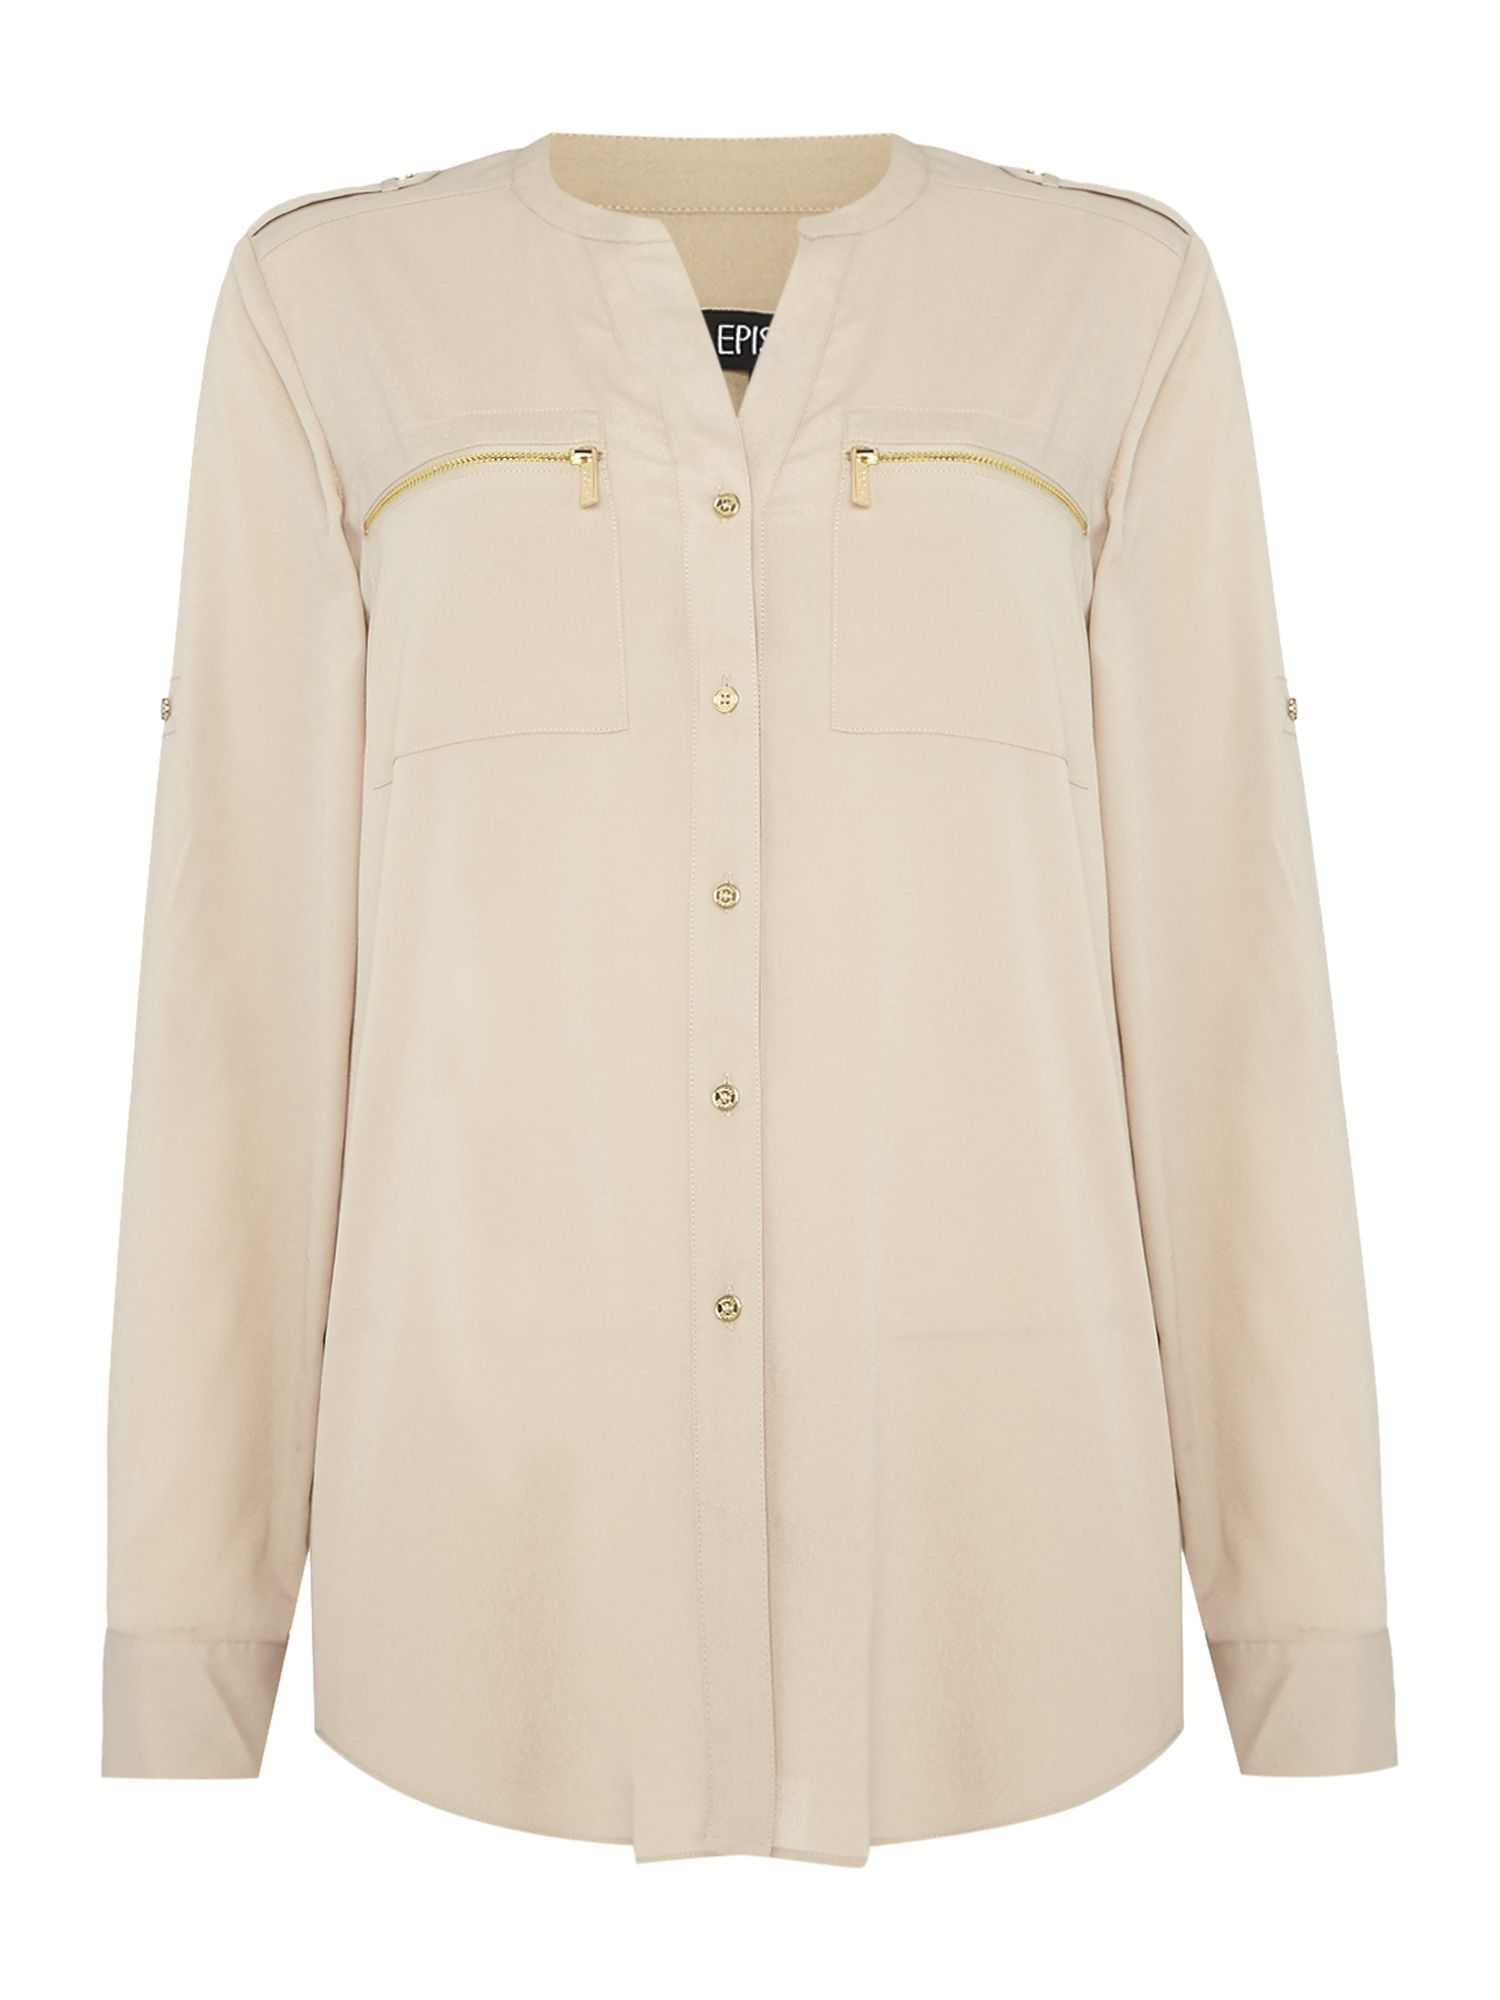 Episode Episode Zip Pocket Shirt, Latte